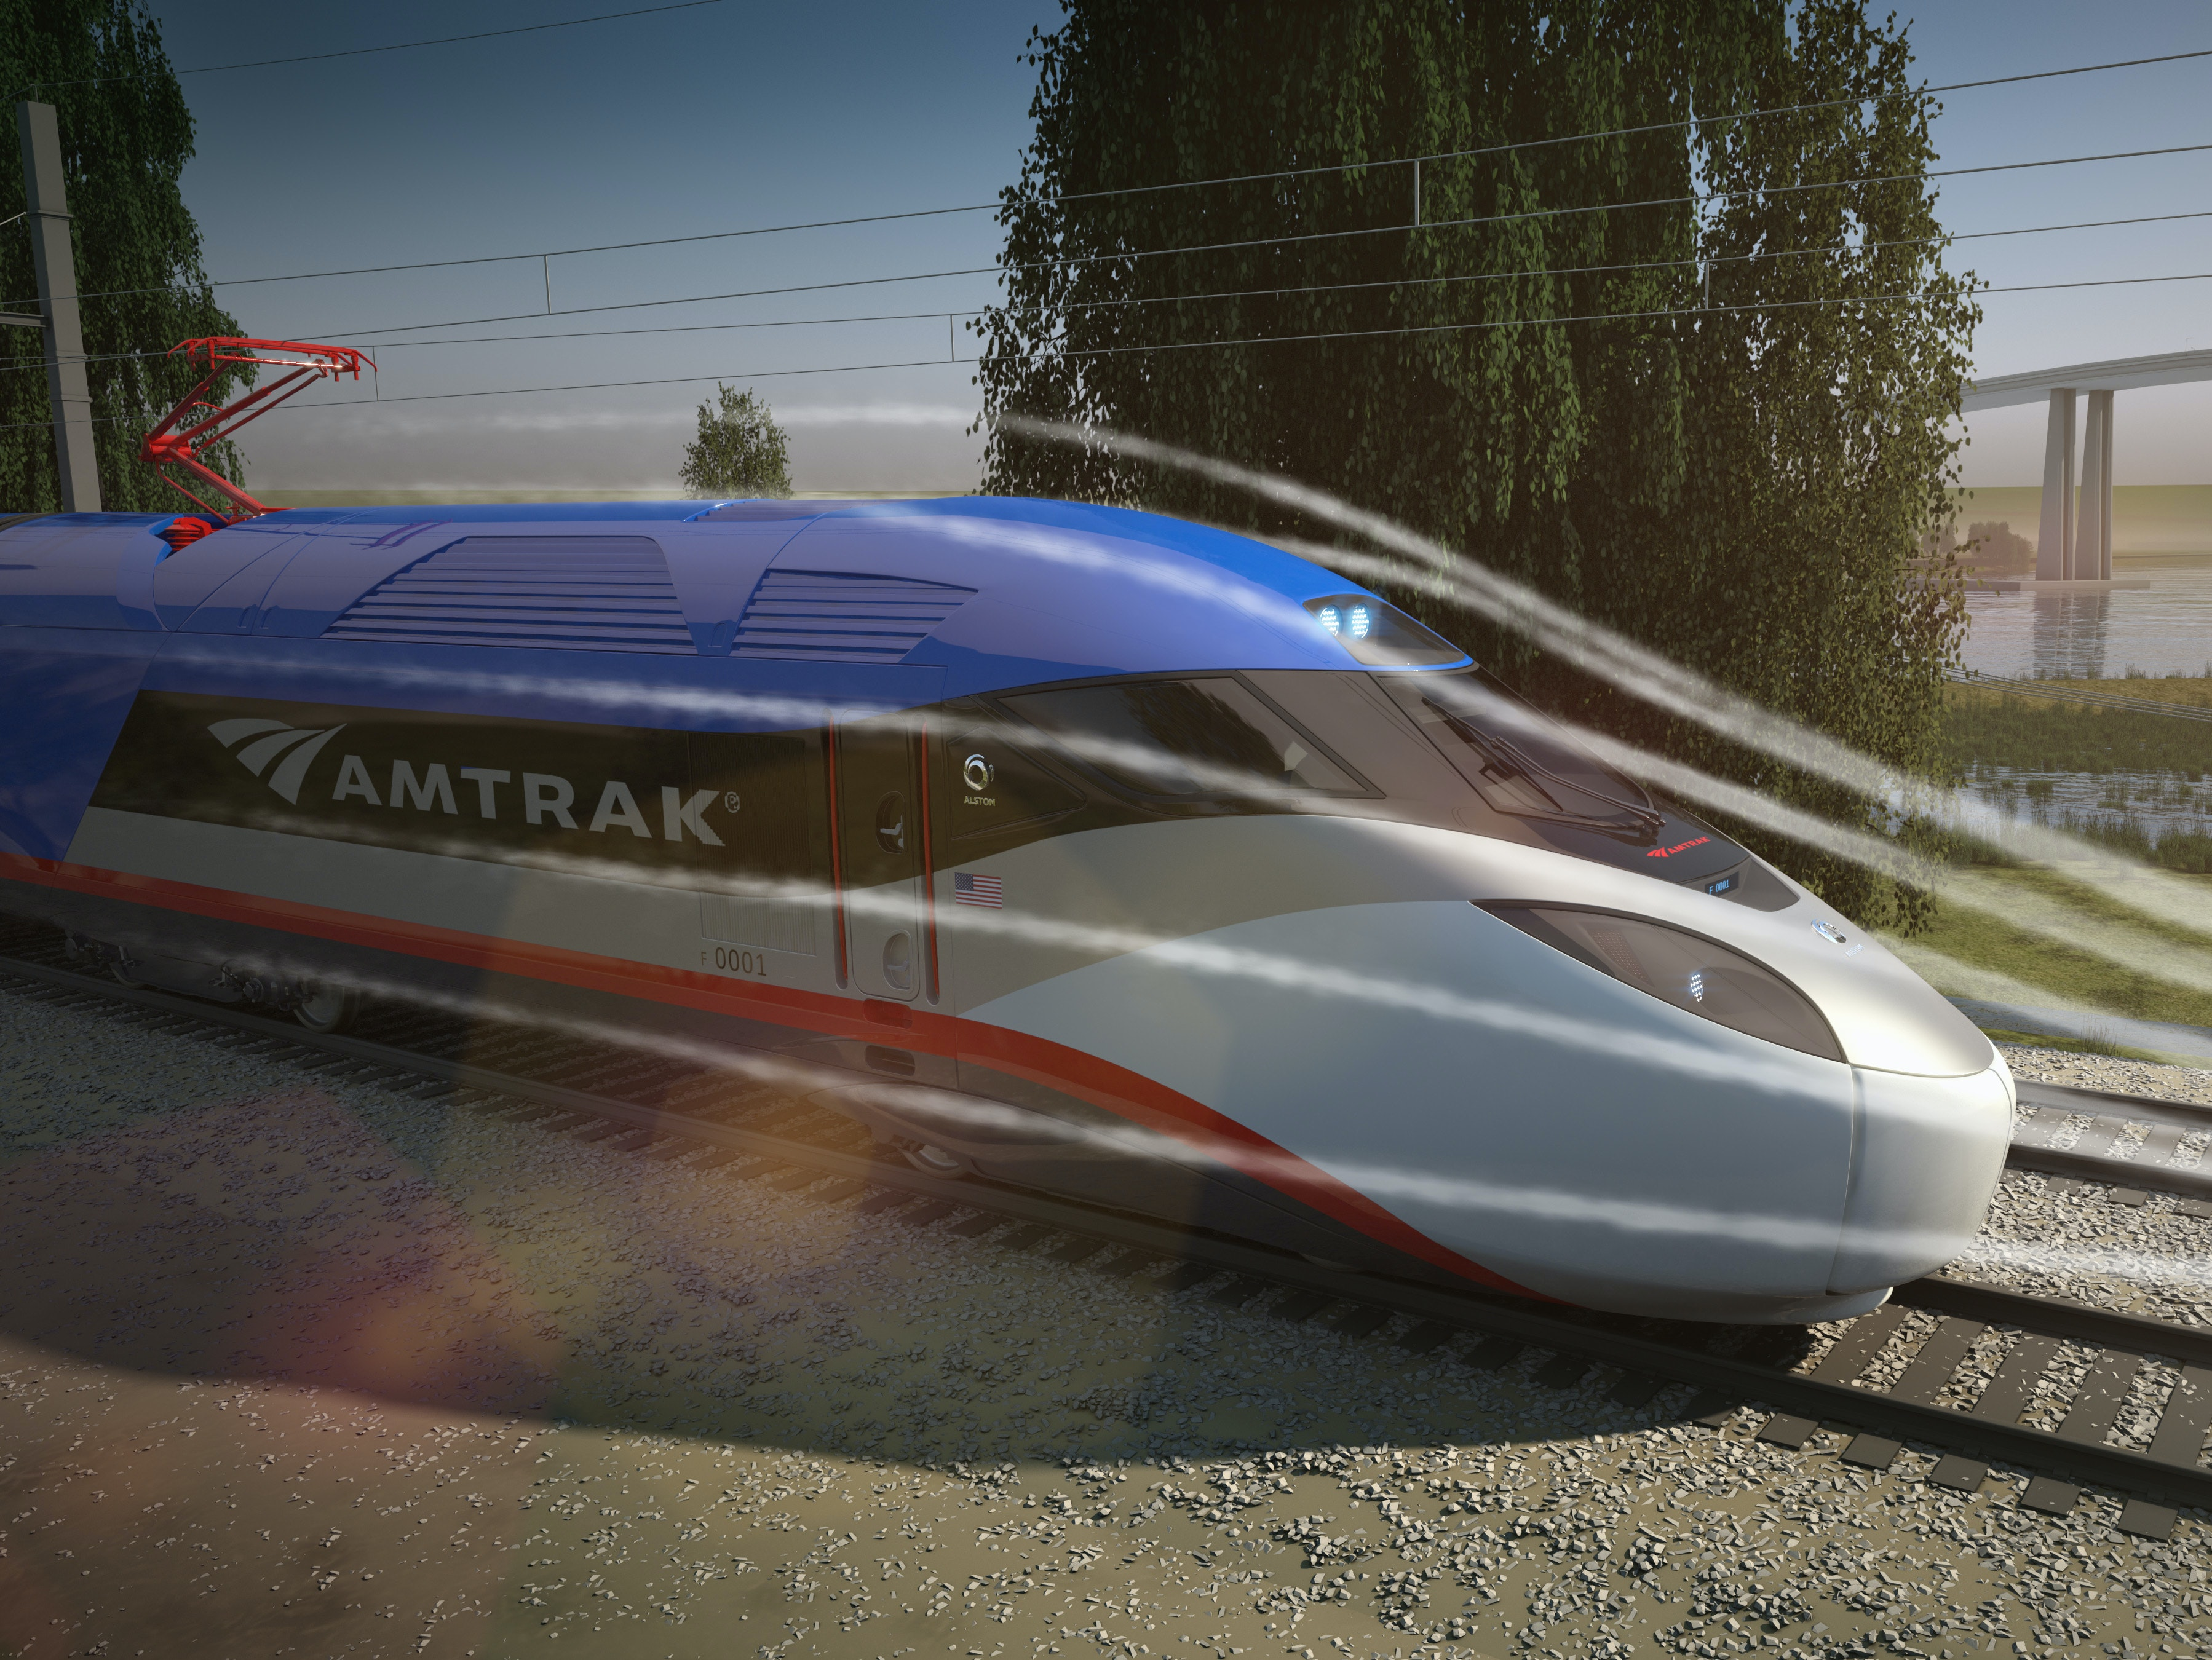 Amtrak Will Roll Out High-Tech Trains by 2021